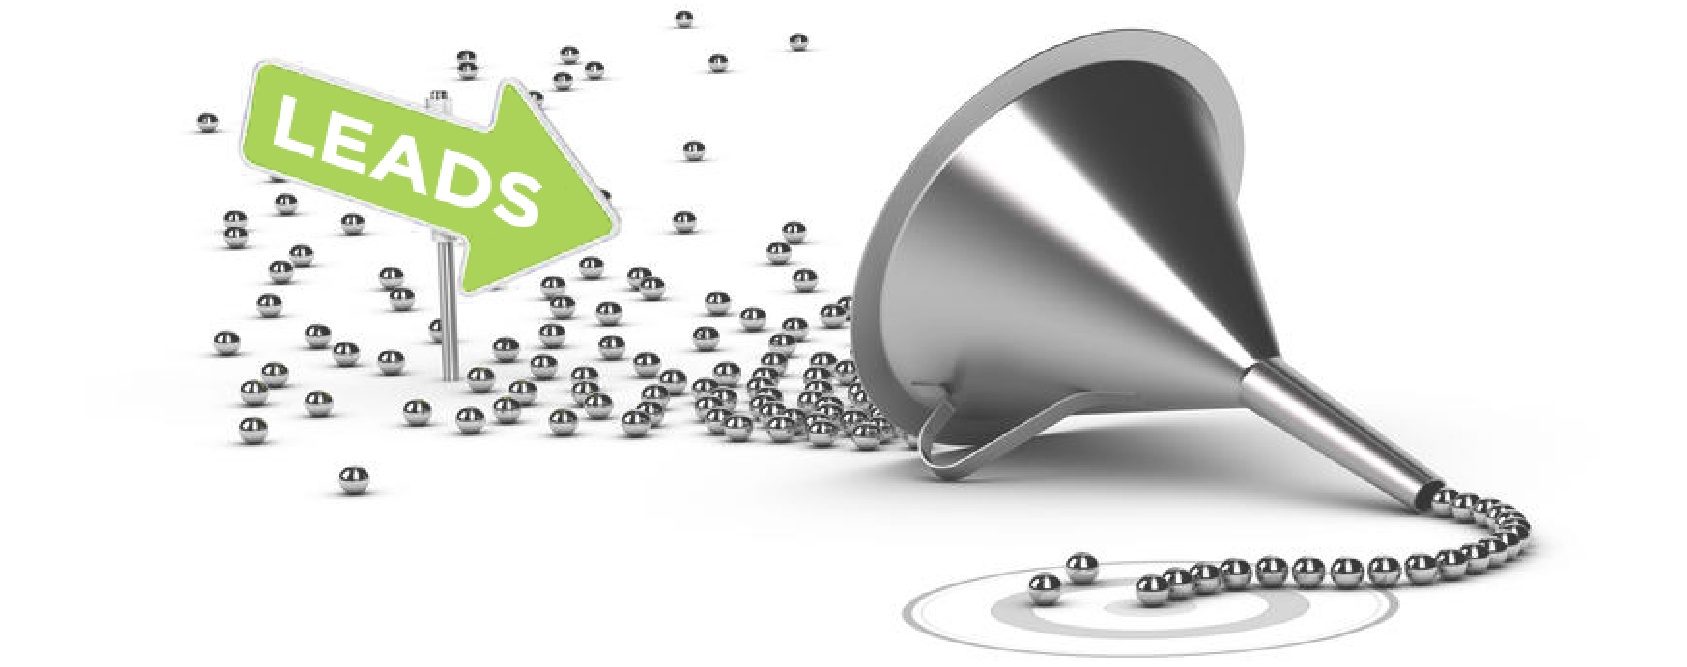 16 Myths about Lead Generation - Image-01.jpg